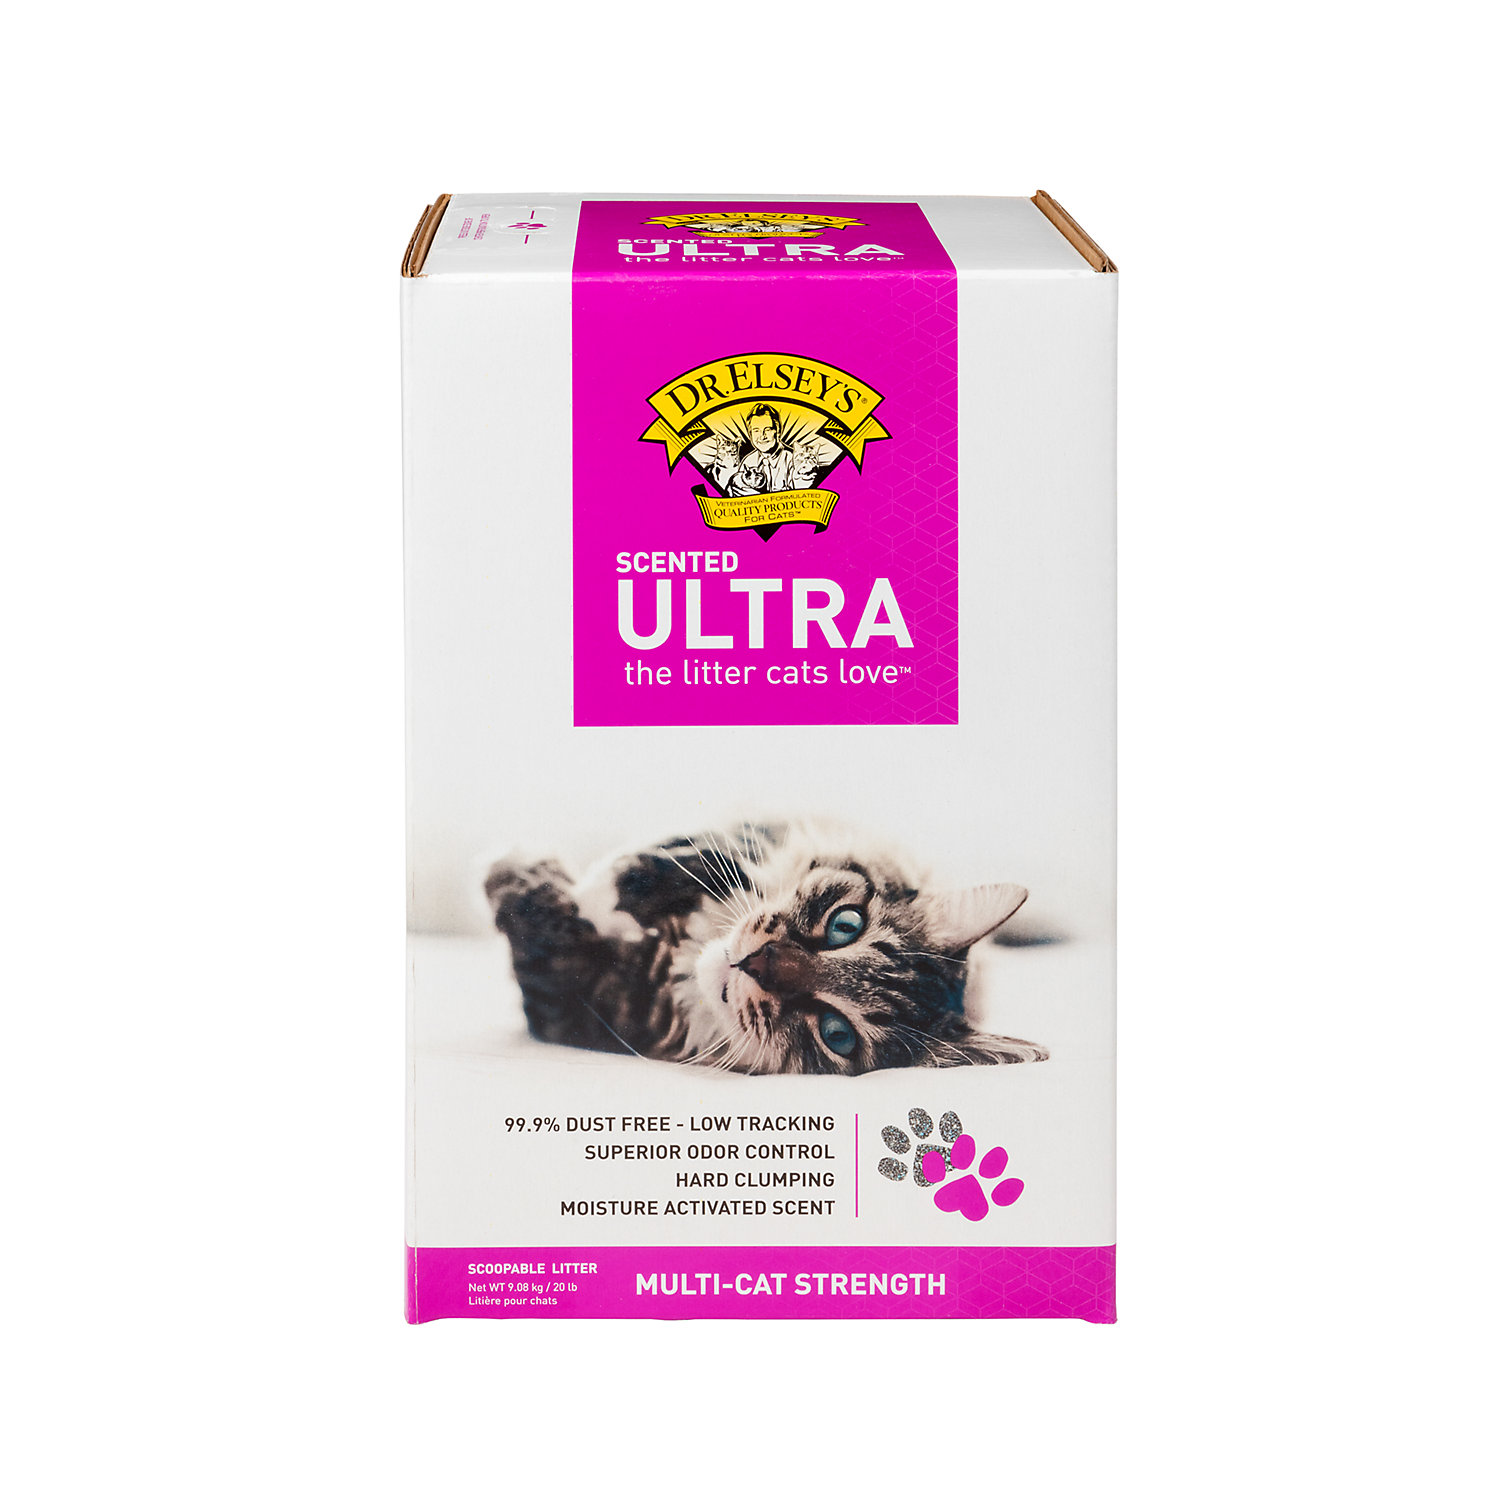 Precious Cat Dr. Elseys Ultra Scented Scoopable Multi-cat Cat Litter